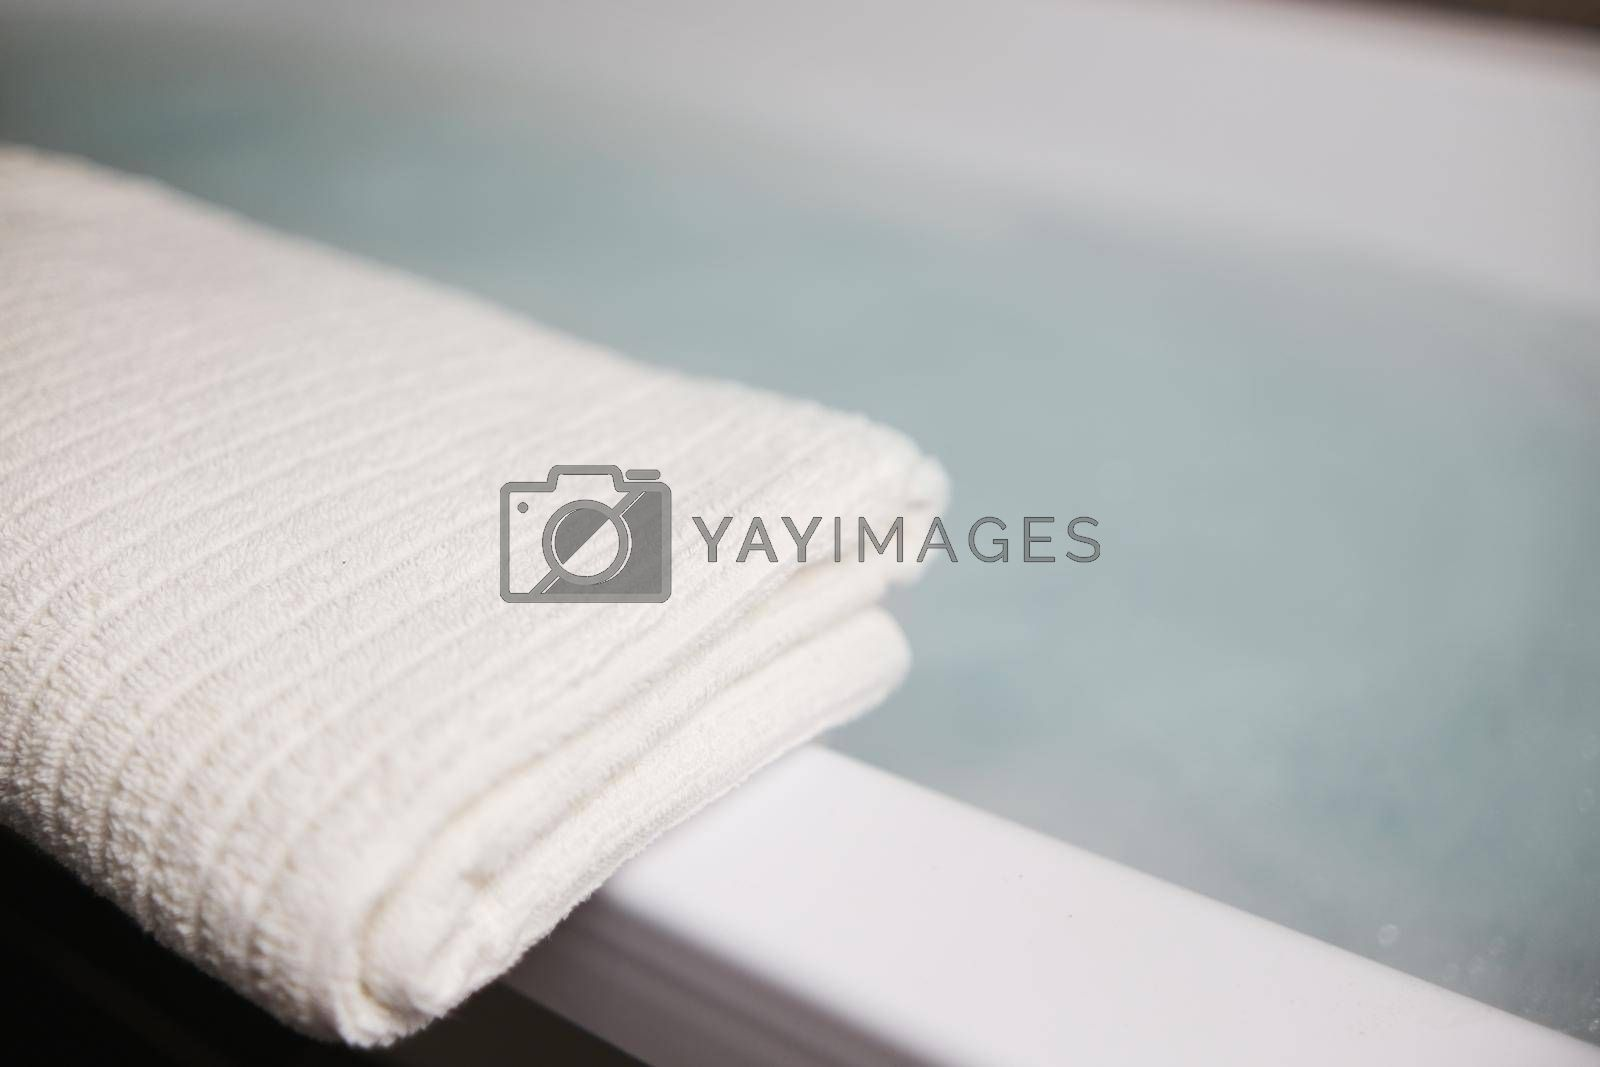 A white towel on the edge of the tub. Blurred background gray blue colors.